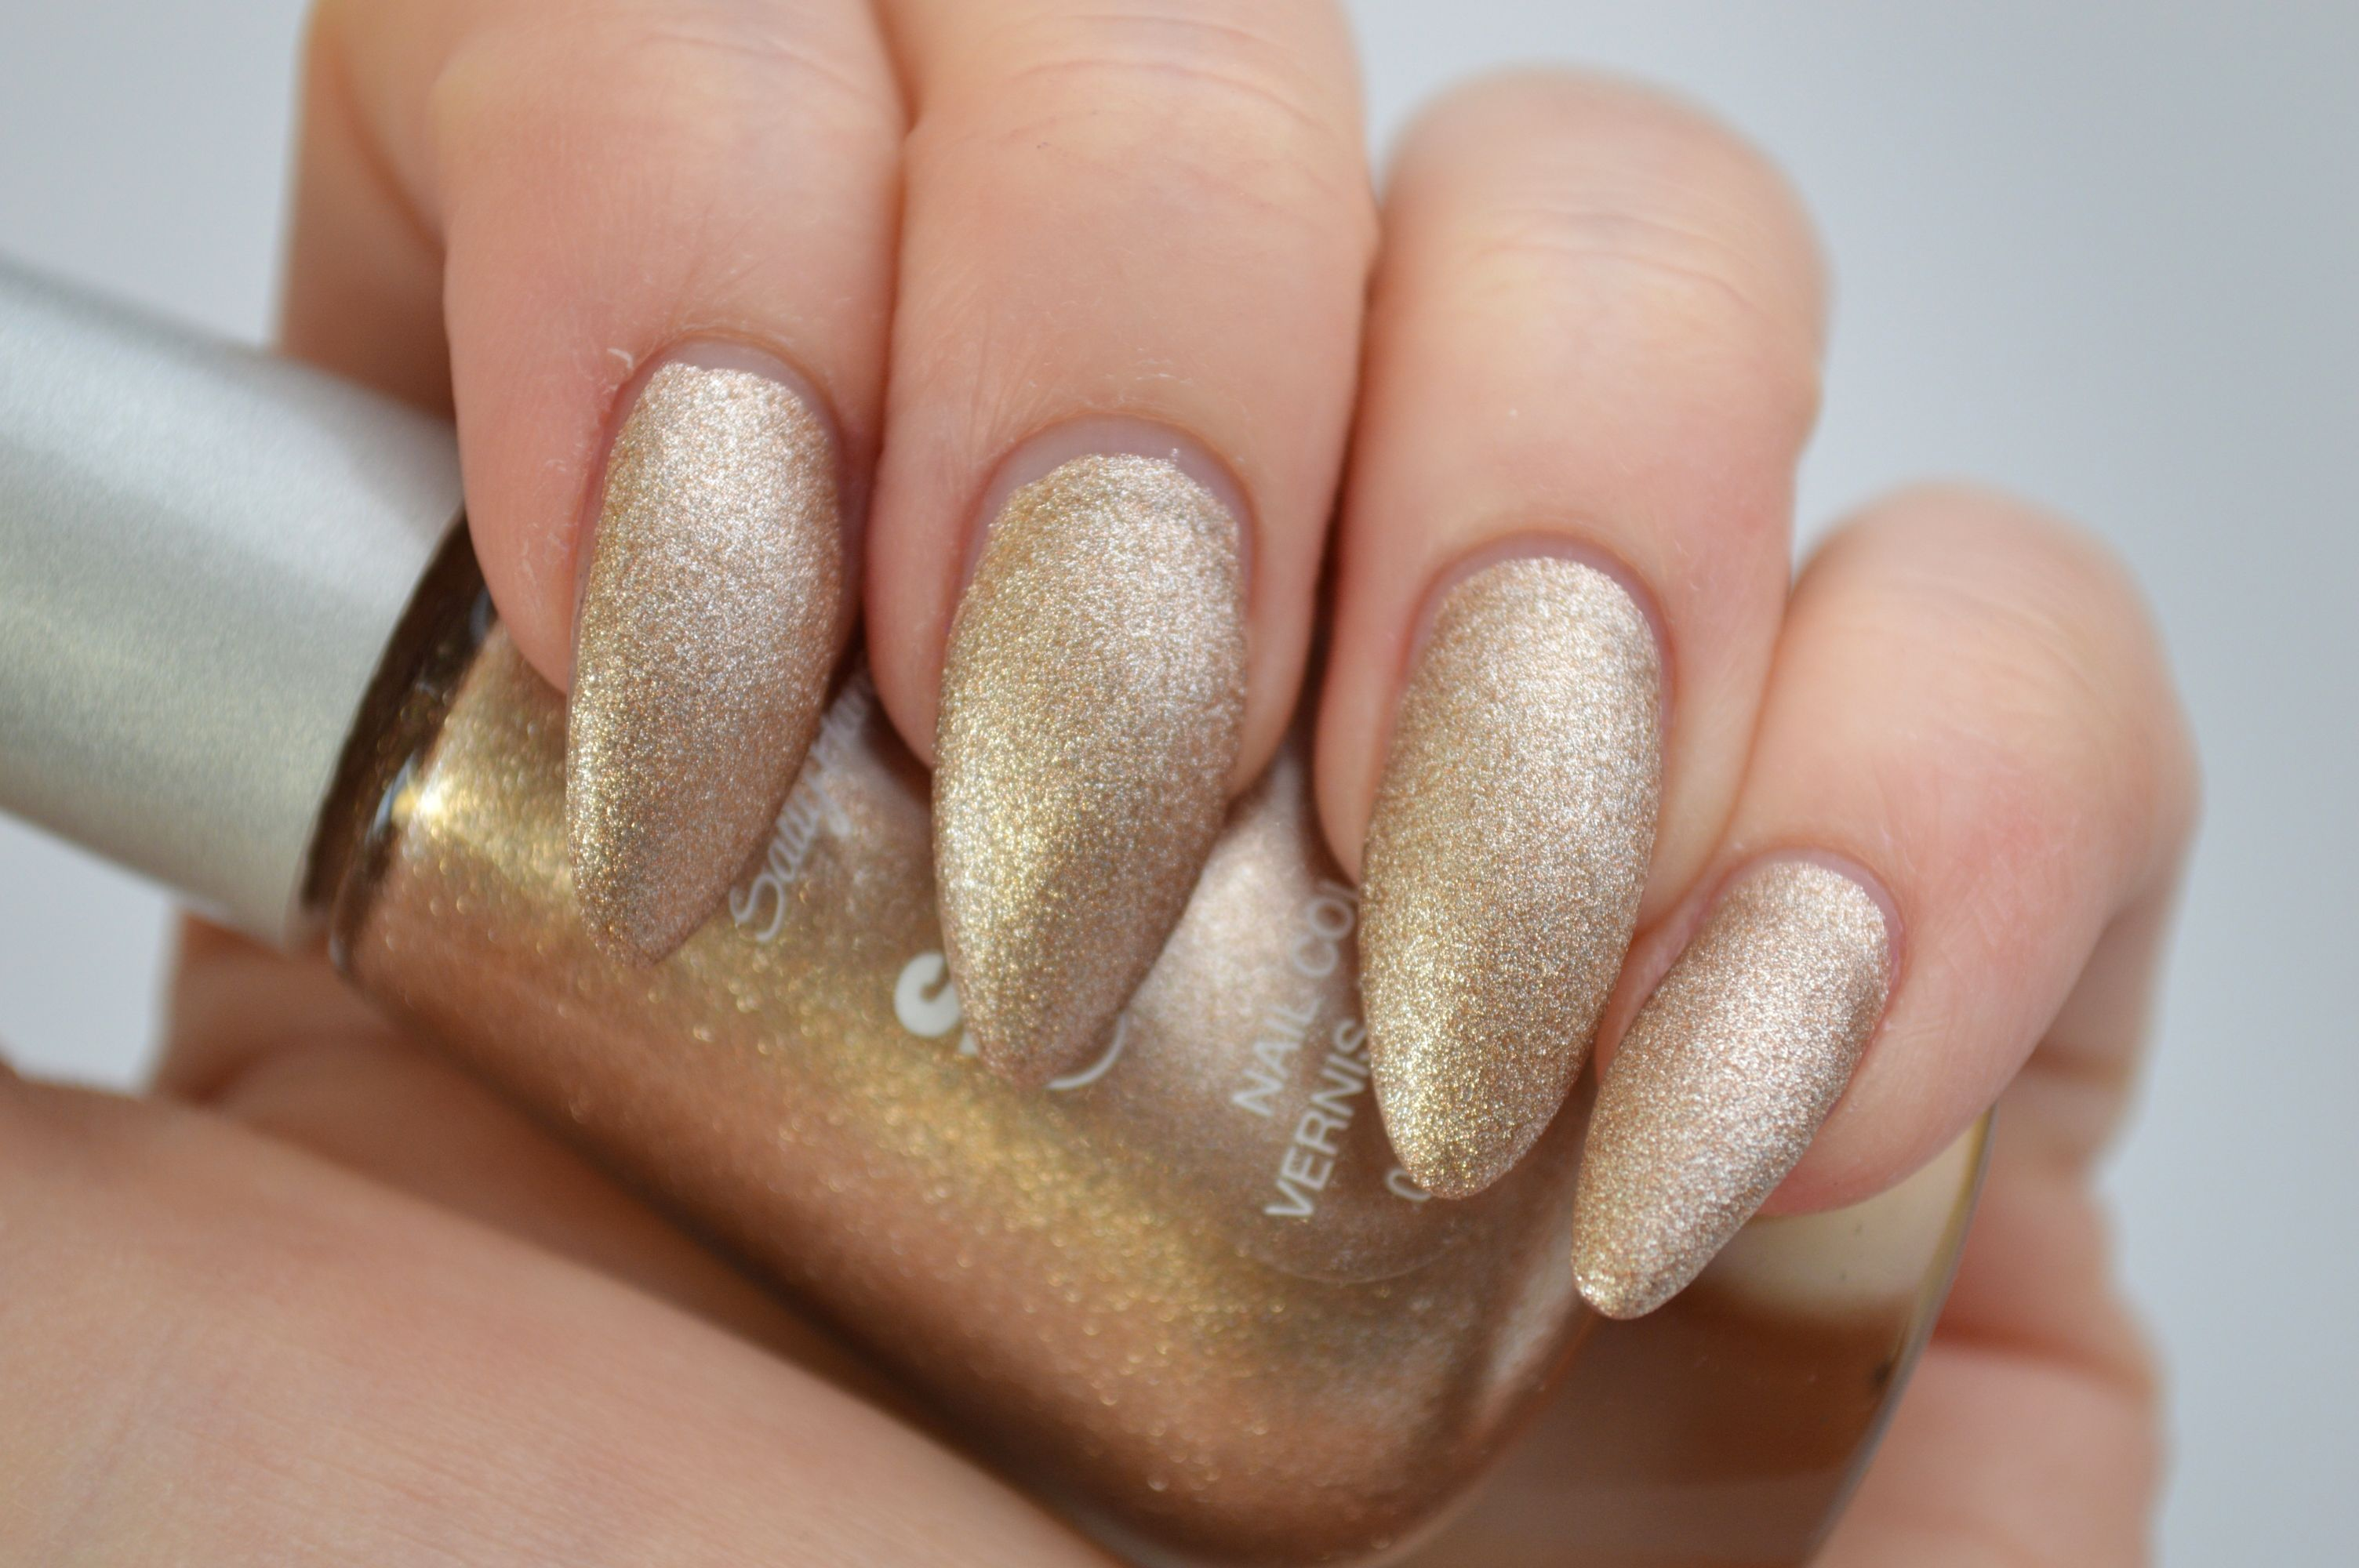 Sally_Hansen_Satin_Glam_Go_Gold_Nagellack